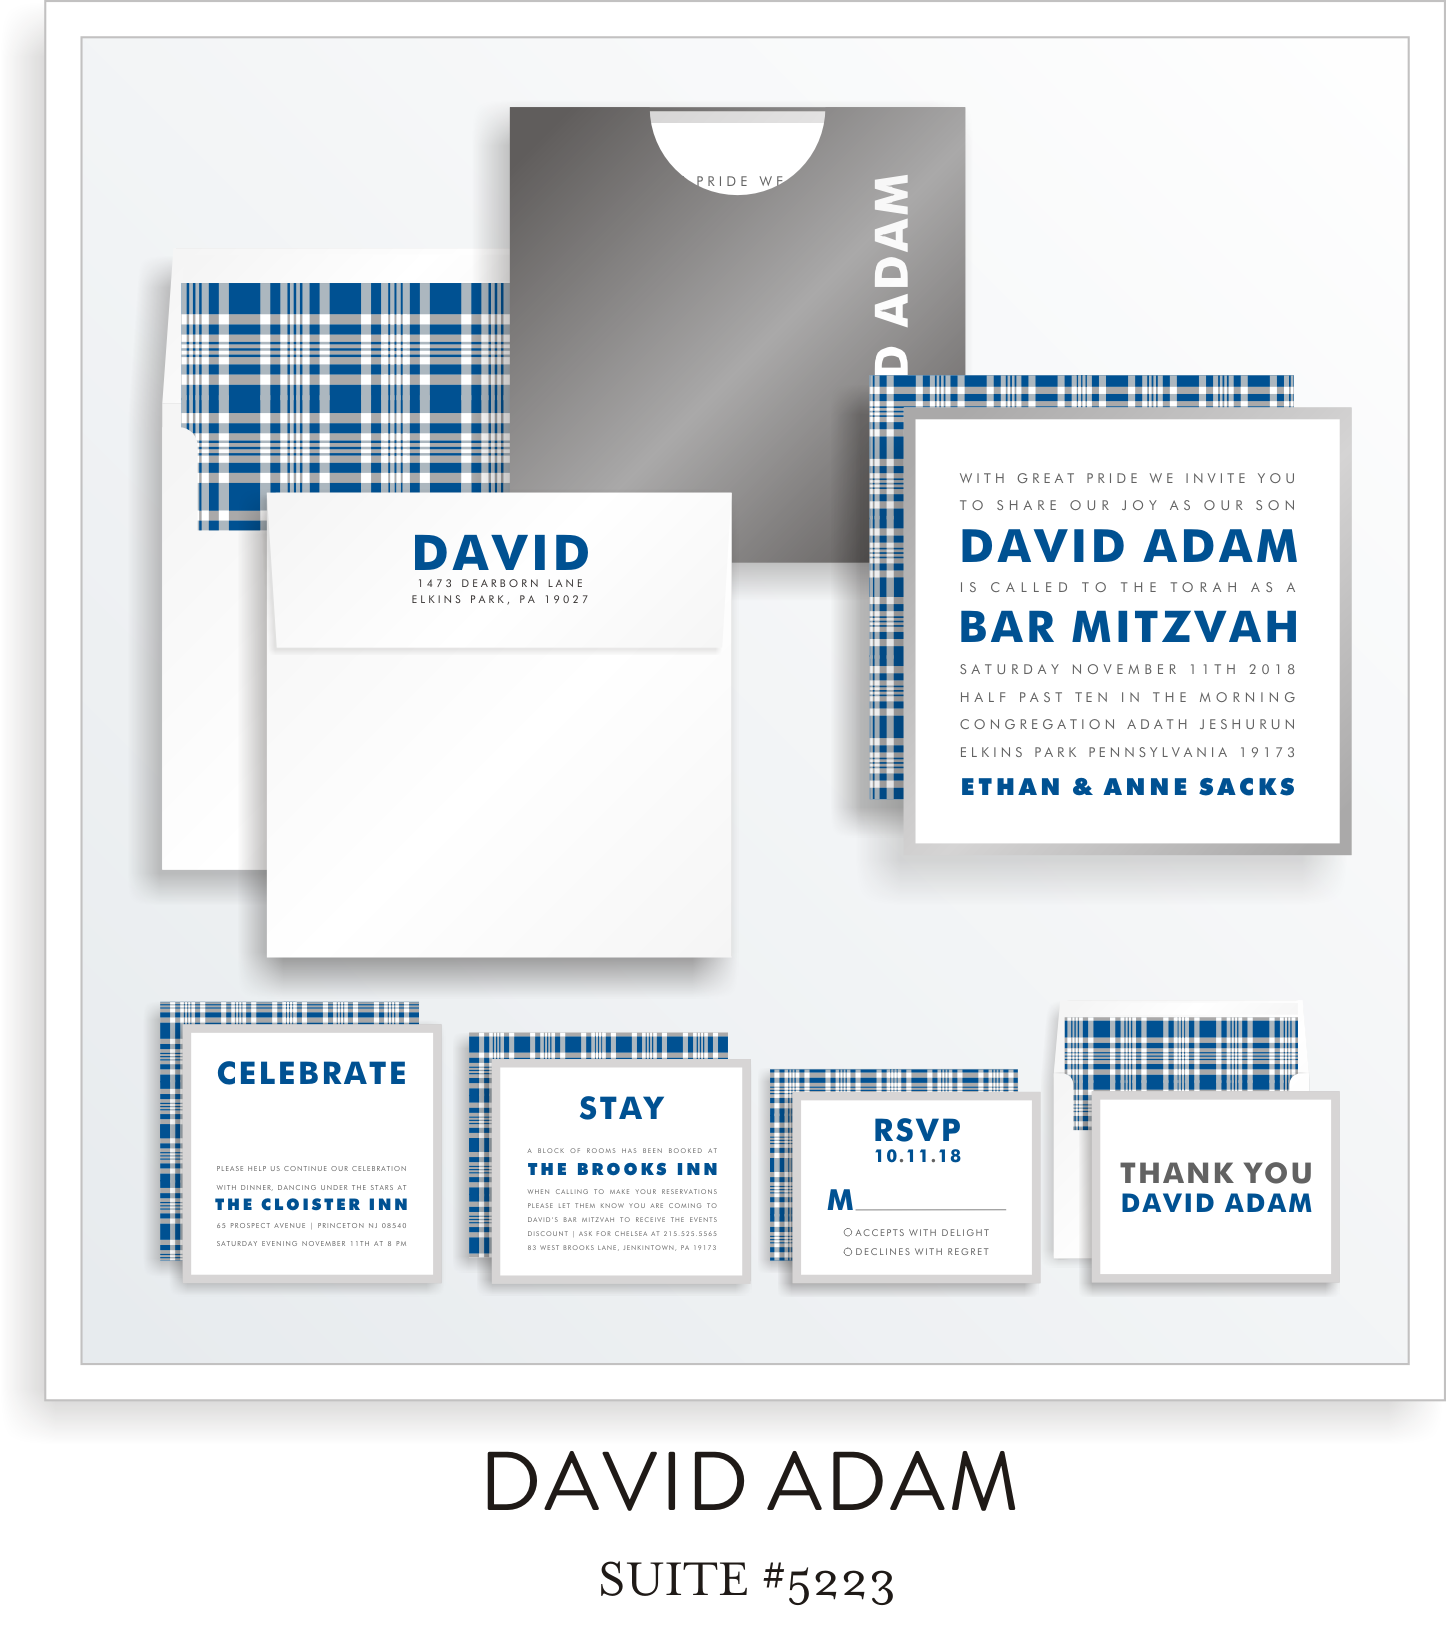 Copy of Copy of <a href=/bar-mitzvah-invitations-5223>Suite Details→</a><strong><a href=/david-adam-in-colors>see more colors→</a></strong>